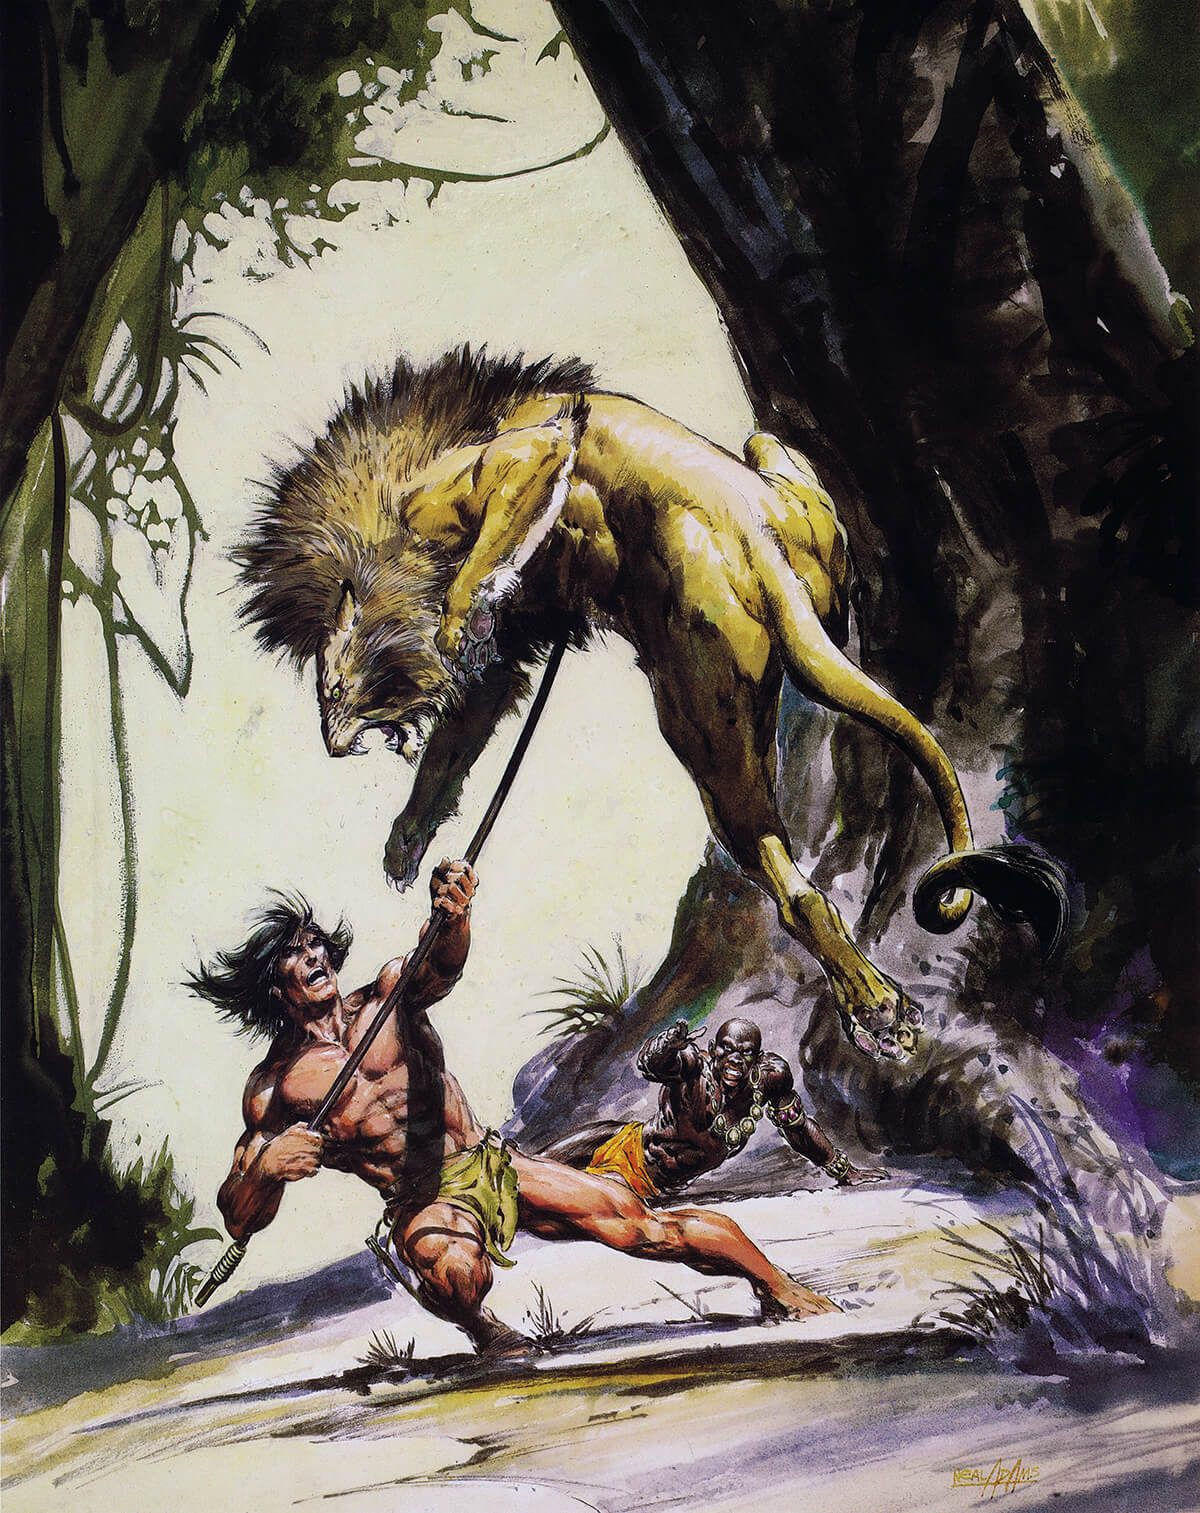 Neal Adams 2 The Return Of Tarzan Original